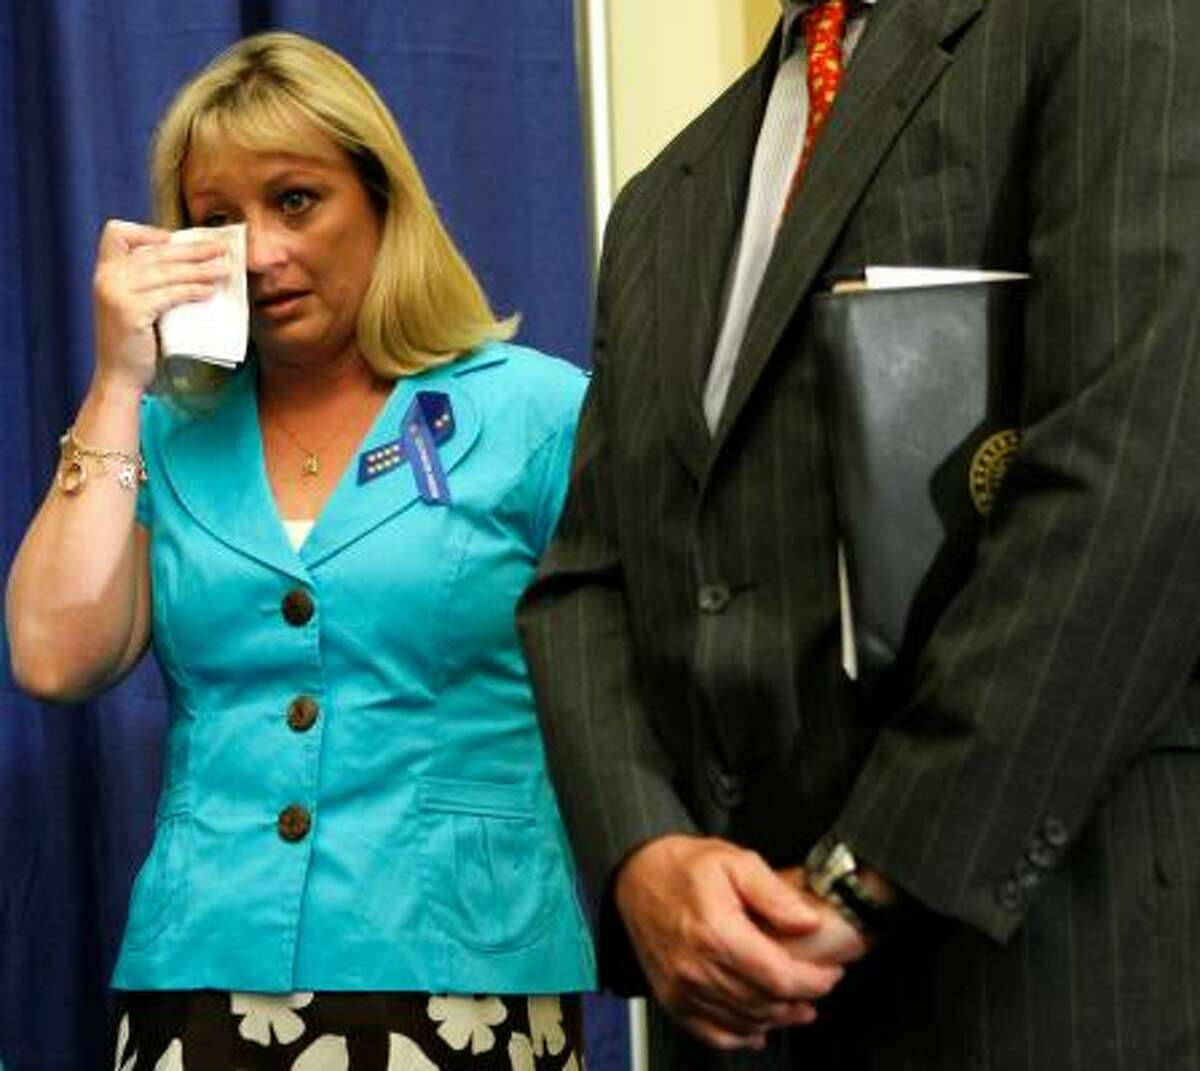 Shelly Anderson, widow of Deepwater Horizon rig worker Jason Anderson, wipes tears during a news conference in Washington, D.C., on Thursday.